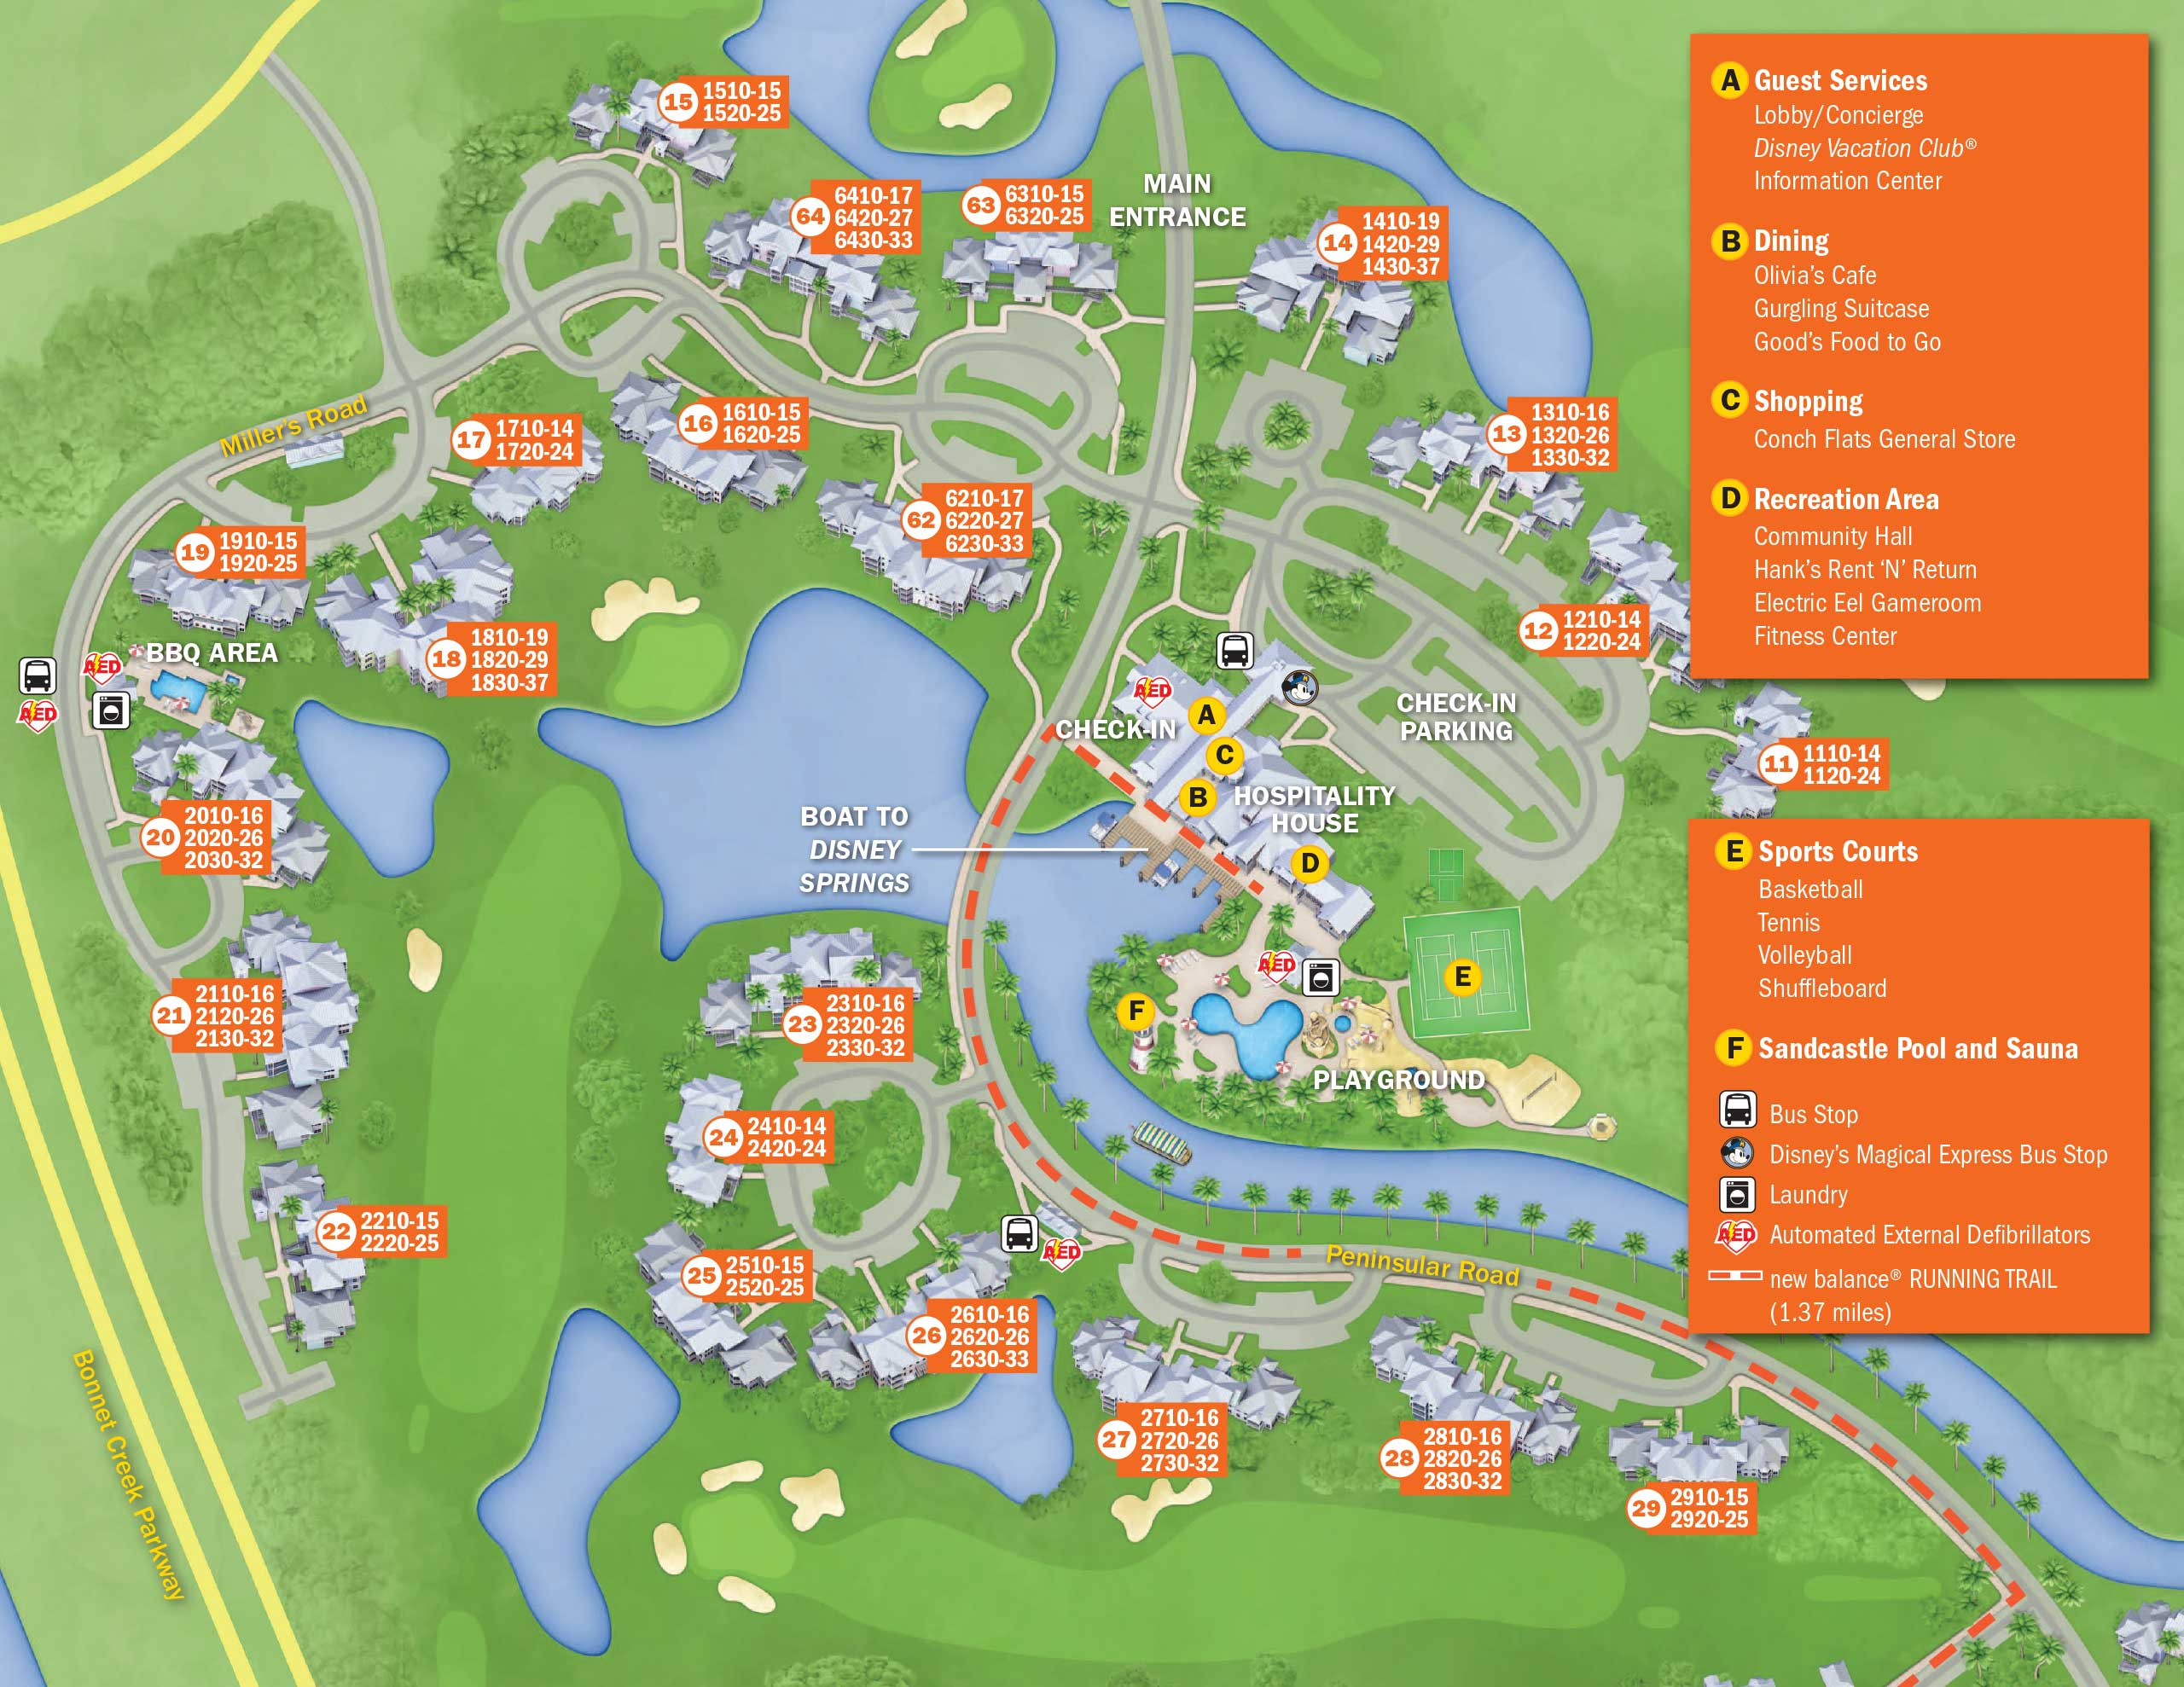 April 2017 Walt Disney World Resort Hotel Maps   Photo 27 of 33